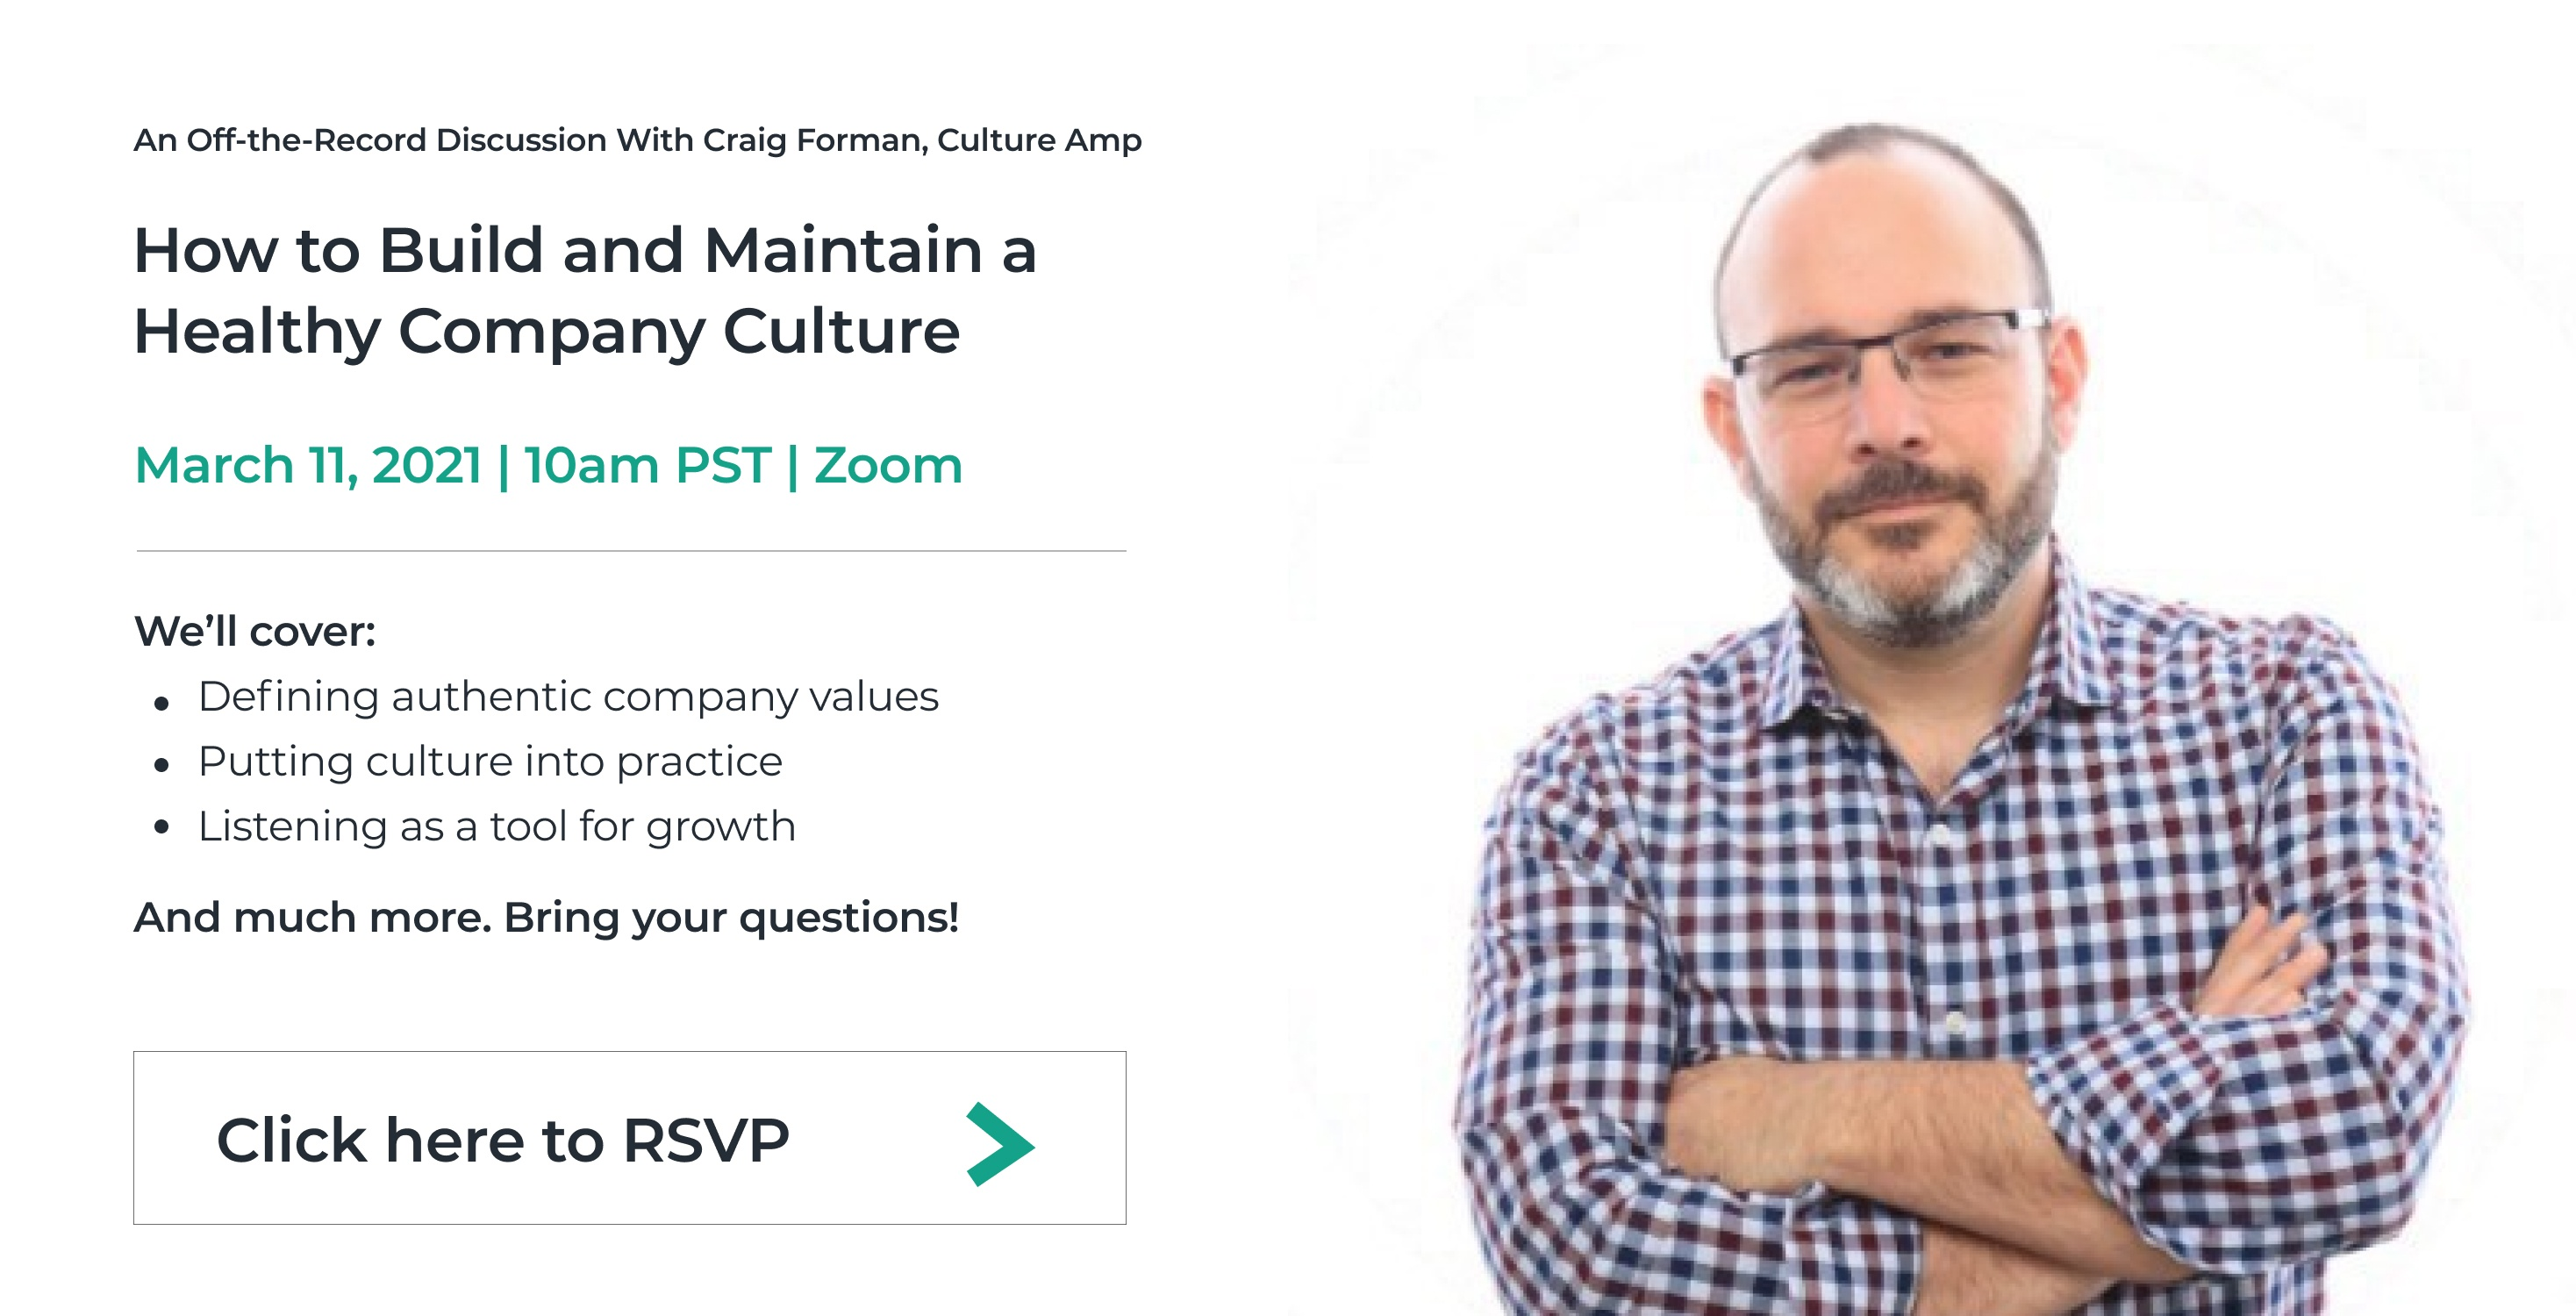 Craig Forman, How to Build and Maintain a Healthy Company Culture, Startup to Scaleup, Click here to RSVP